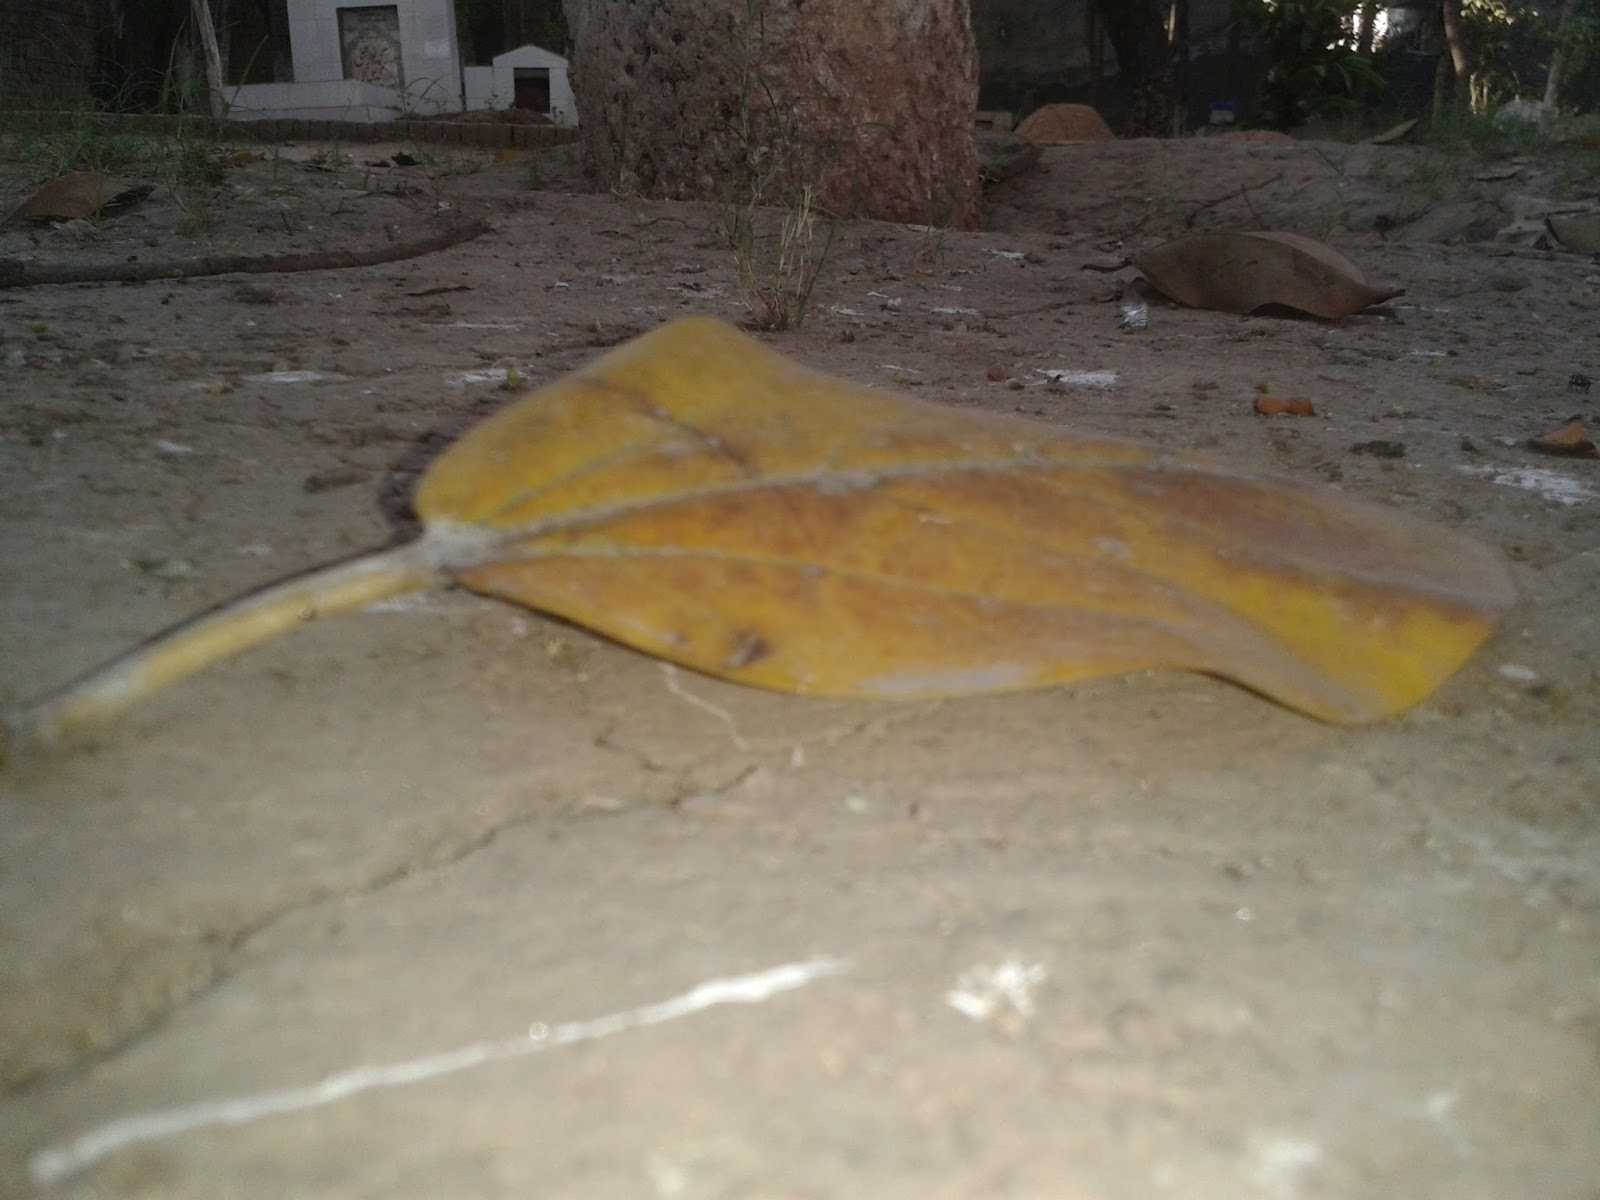 shah-shakoor-sialkot-pakistan-tomb-autumn-leave1